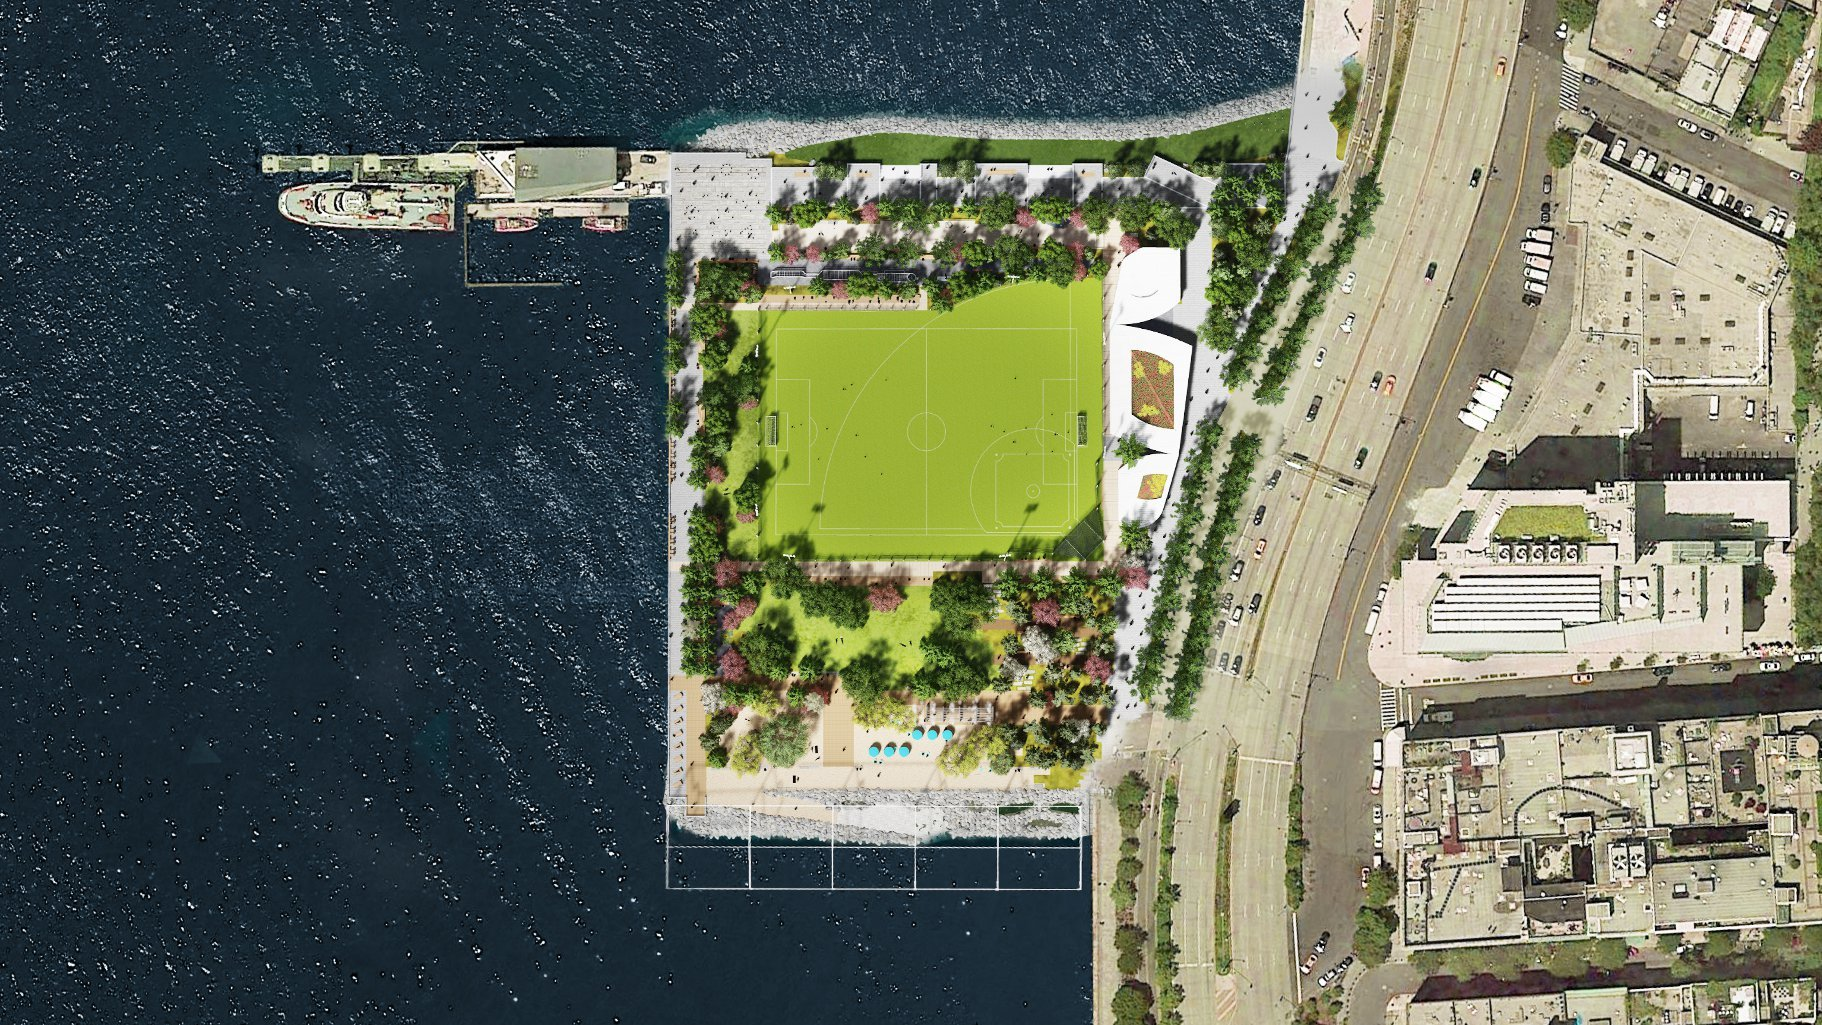 Renderings provided by James Corner Field Operations, courtesy the Hudson River Park Trust